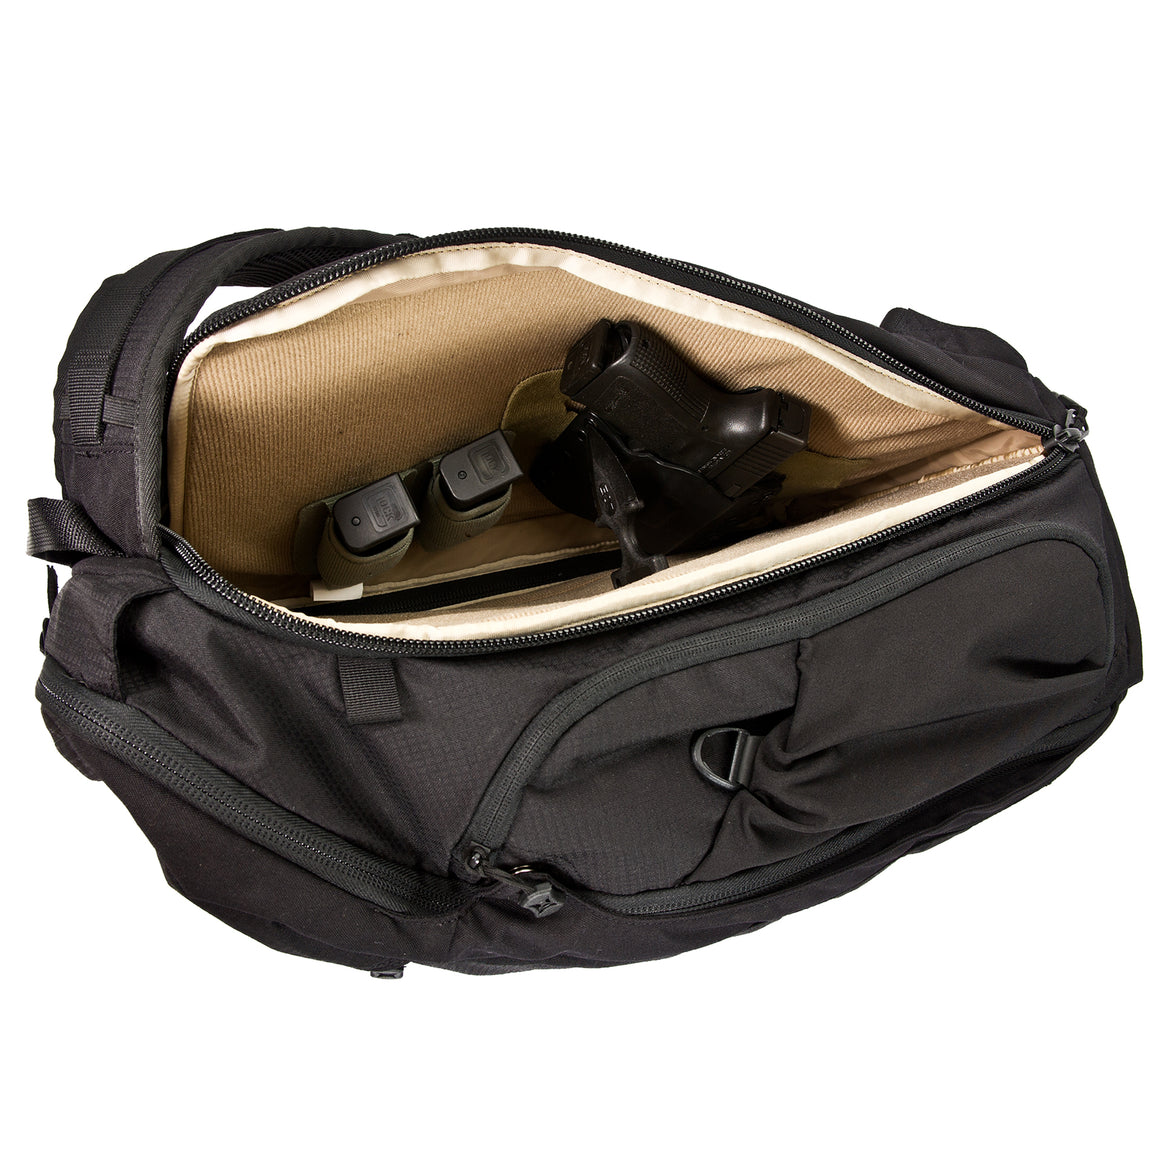 Vertx EDC Gamut Concealed Carry Backpack